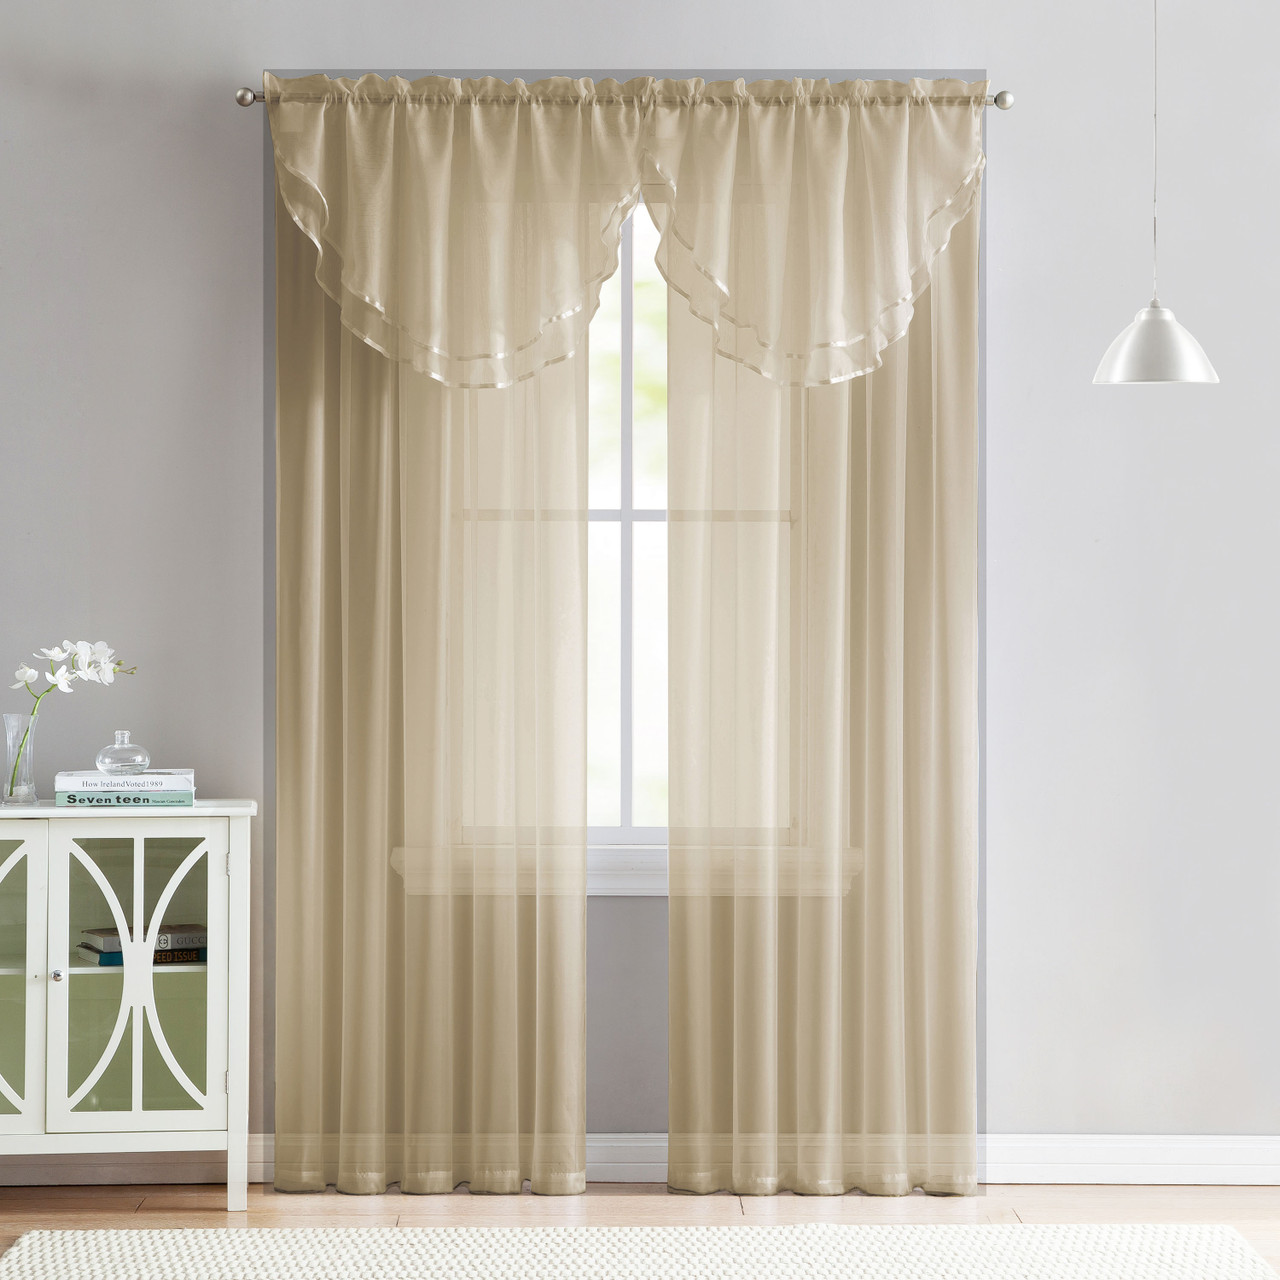 4 Piece Sheer Window Curtain Set For Living Room Dining Room Bay Windows 2 Voile Valance Curtains And 2 Panels 84 In Long Taupe My Infinity Store